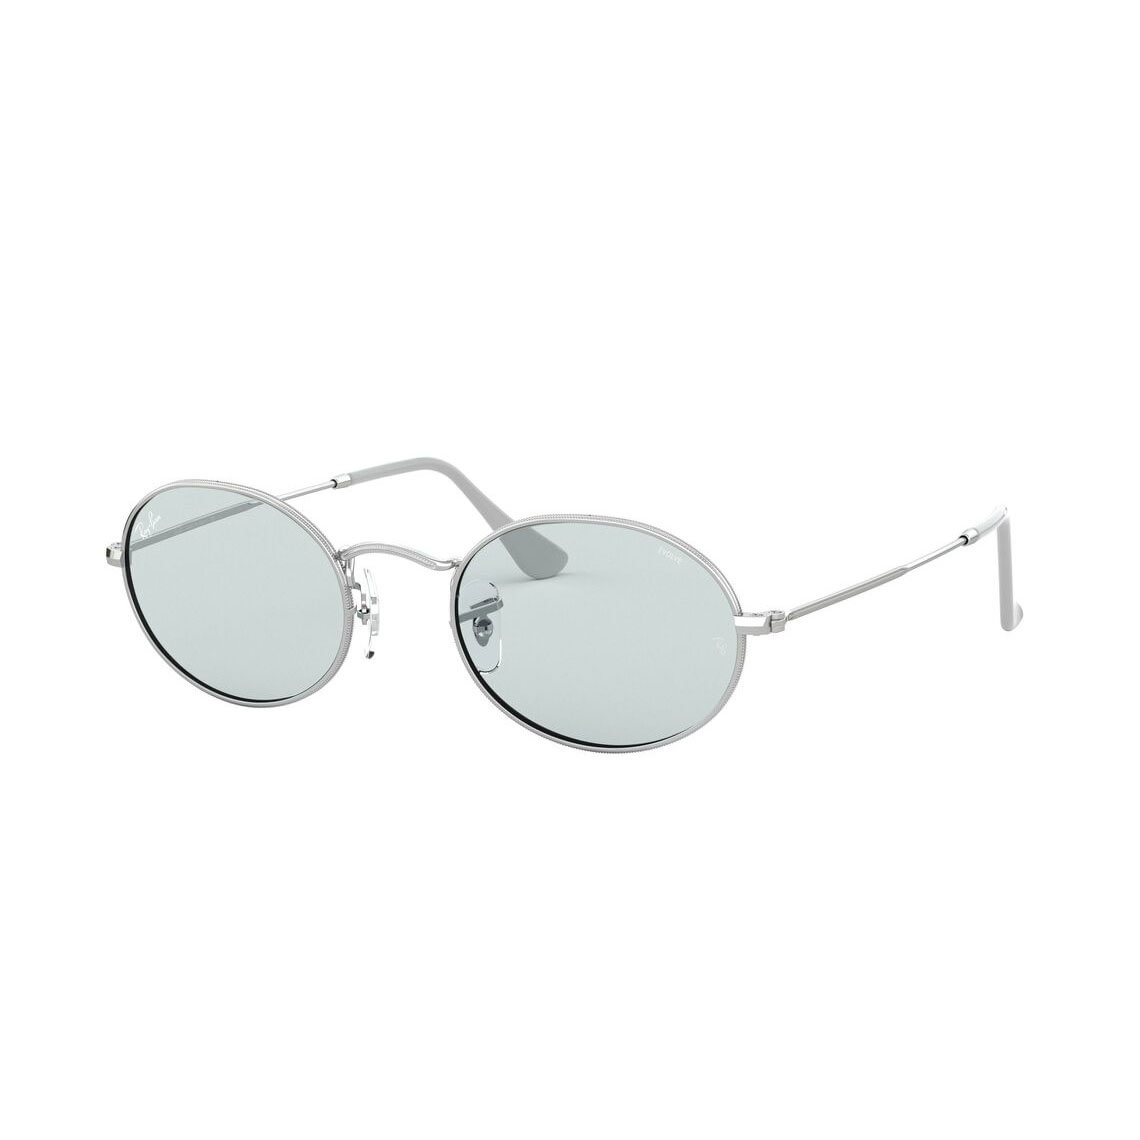 Ray-Ban Oval Solid Evolve RB3547 003/T3 5421